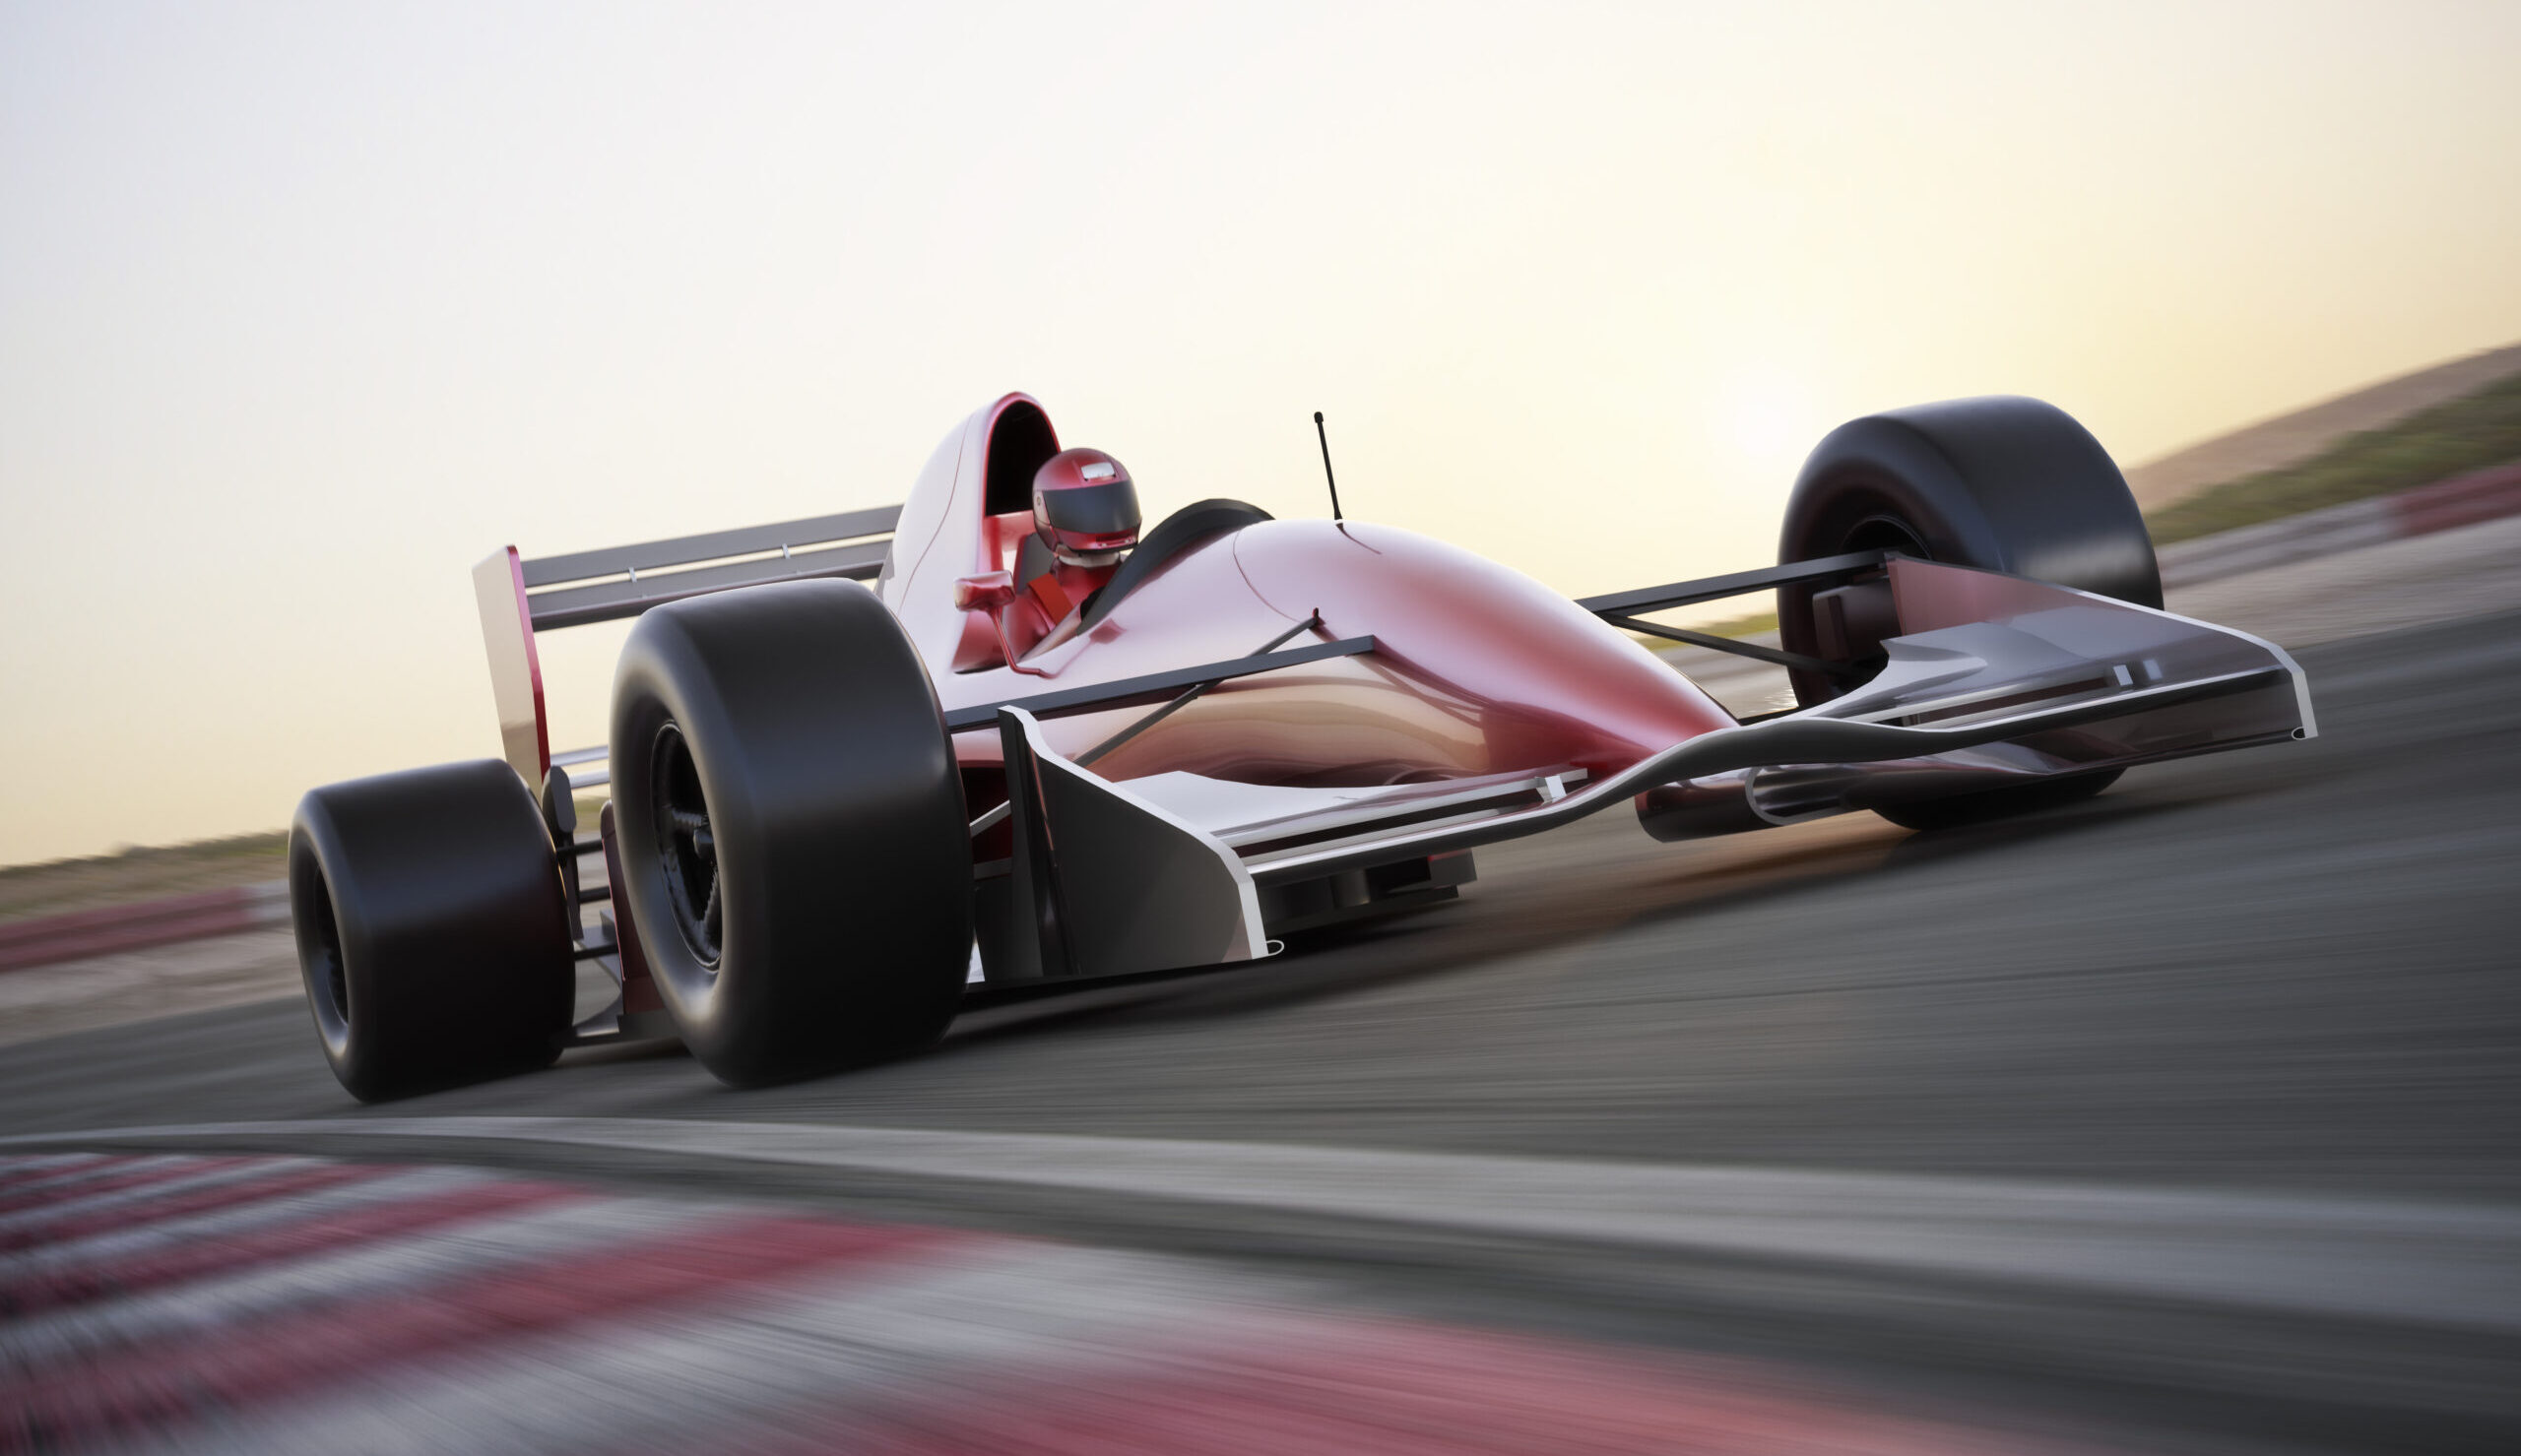 racecar driver going fast like line of credit loans from rushfire.io